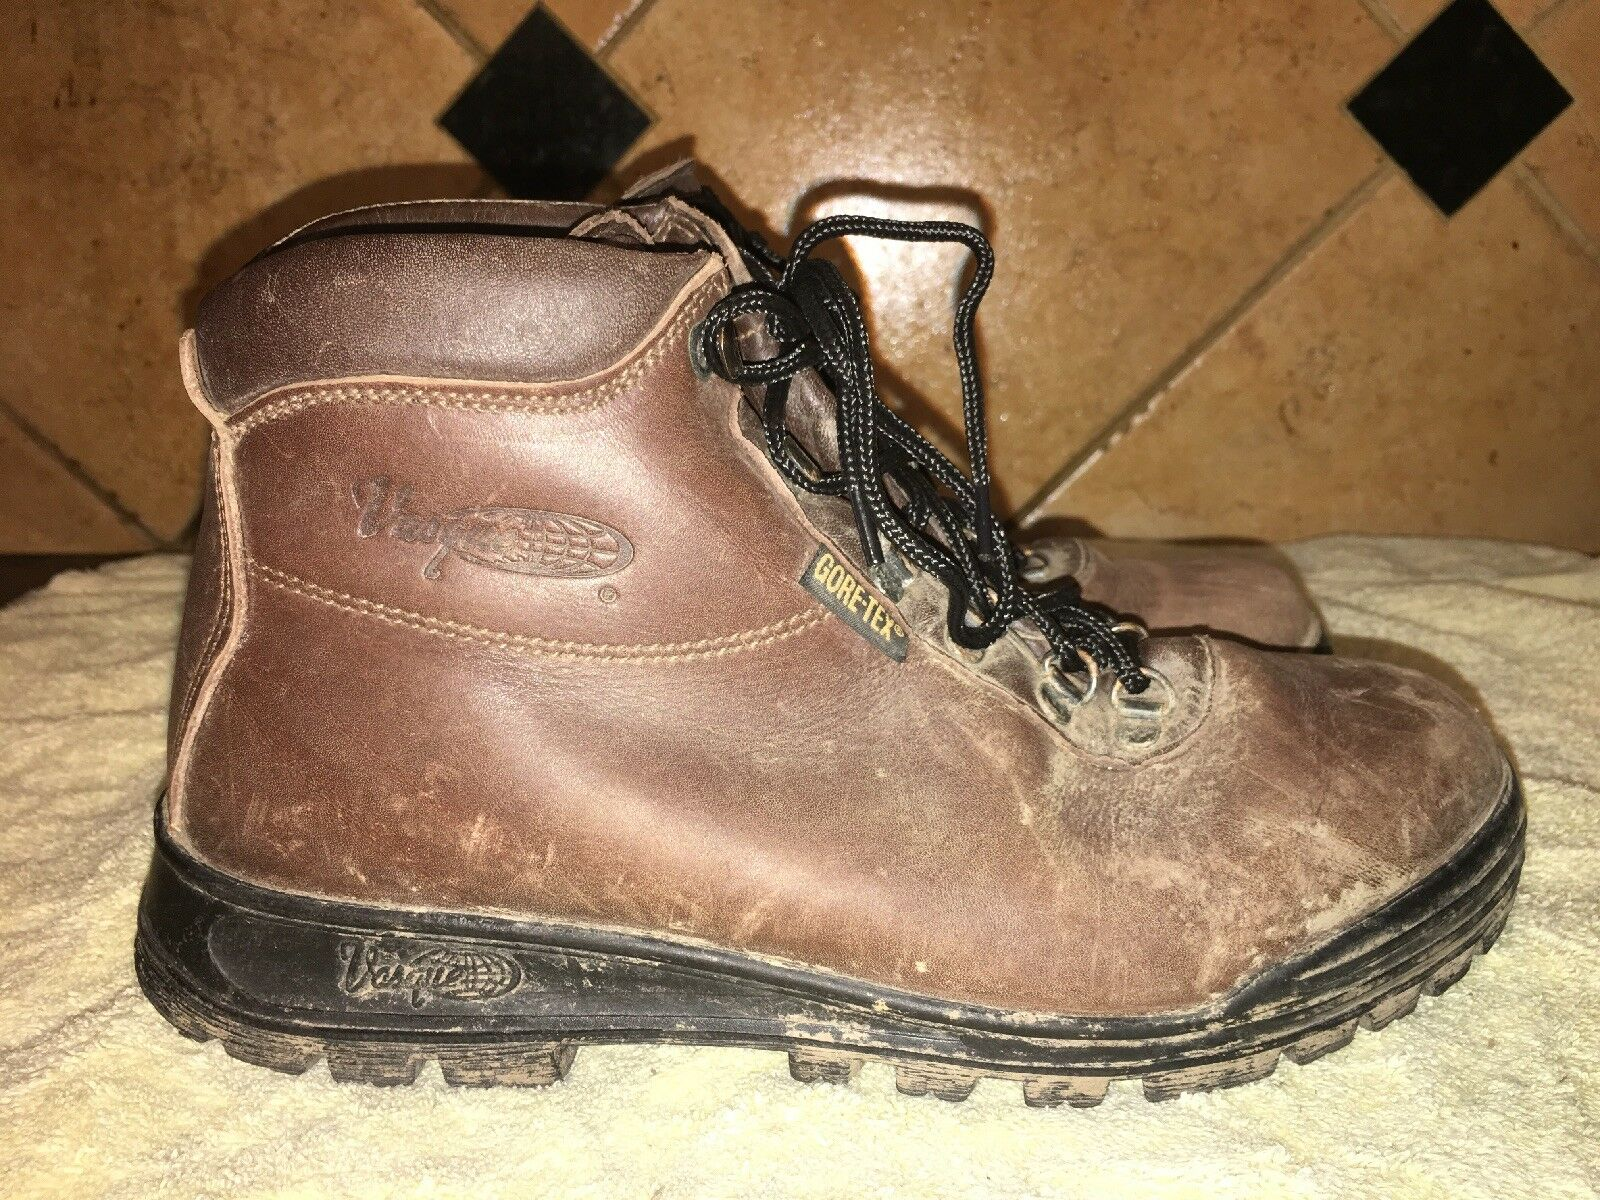 Vasque Brown Leather Hiking Trail  Boots Sz 40.5 EU  official website